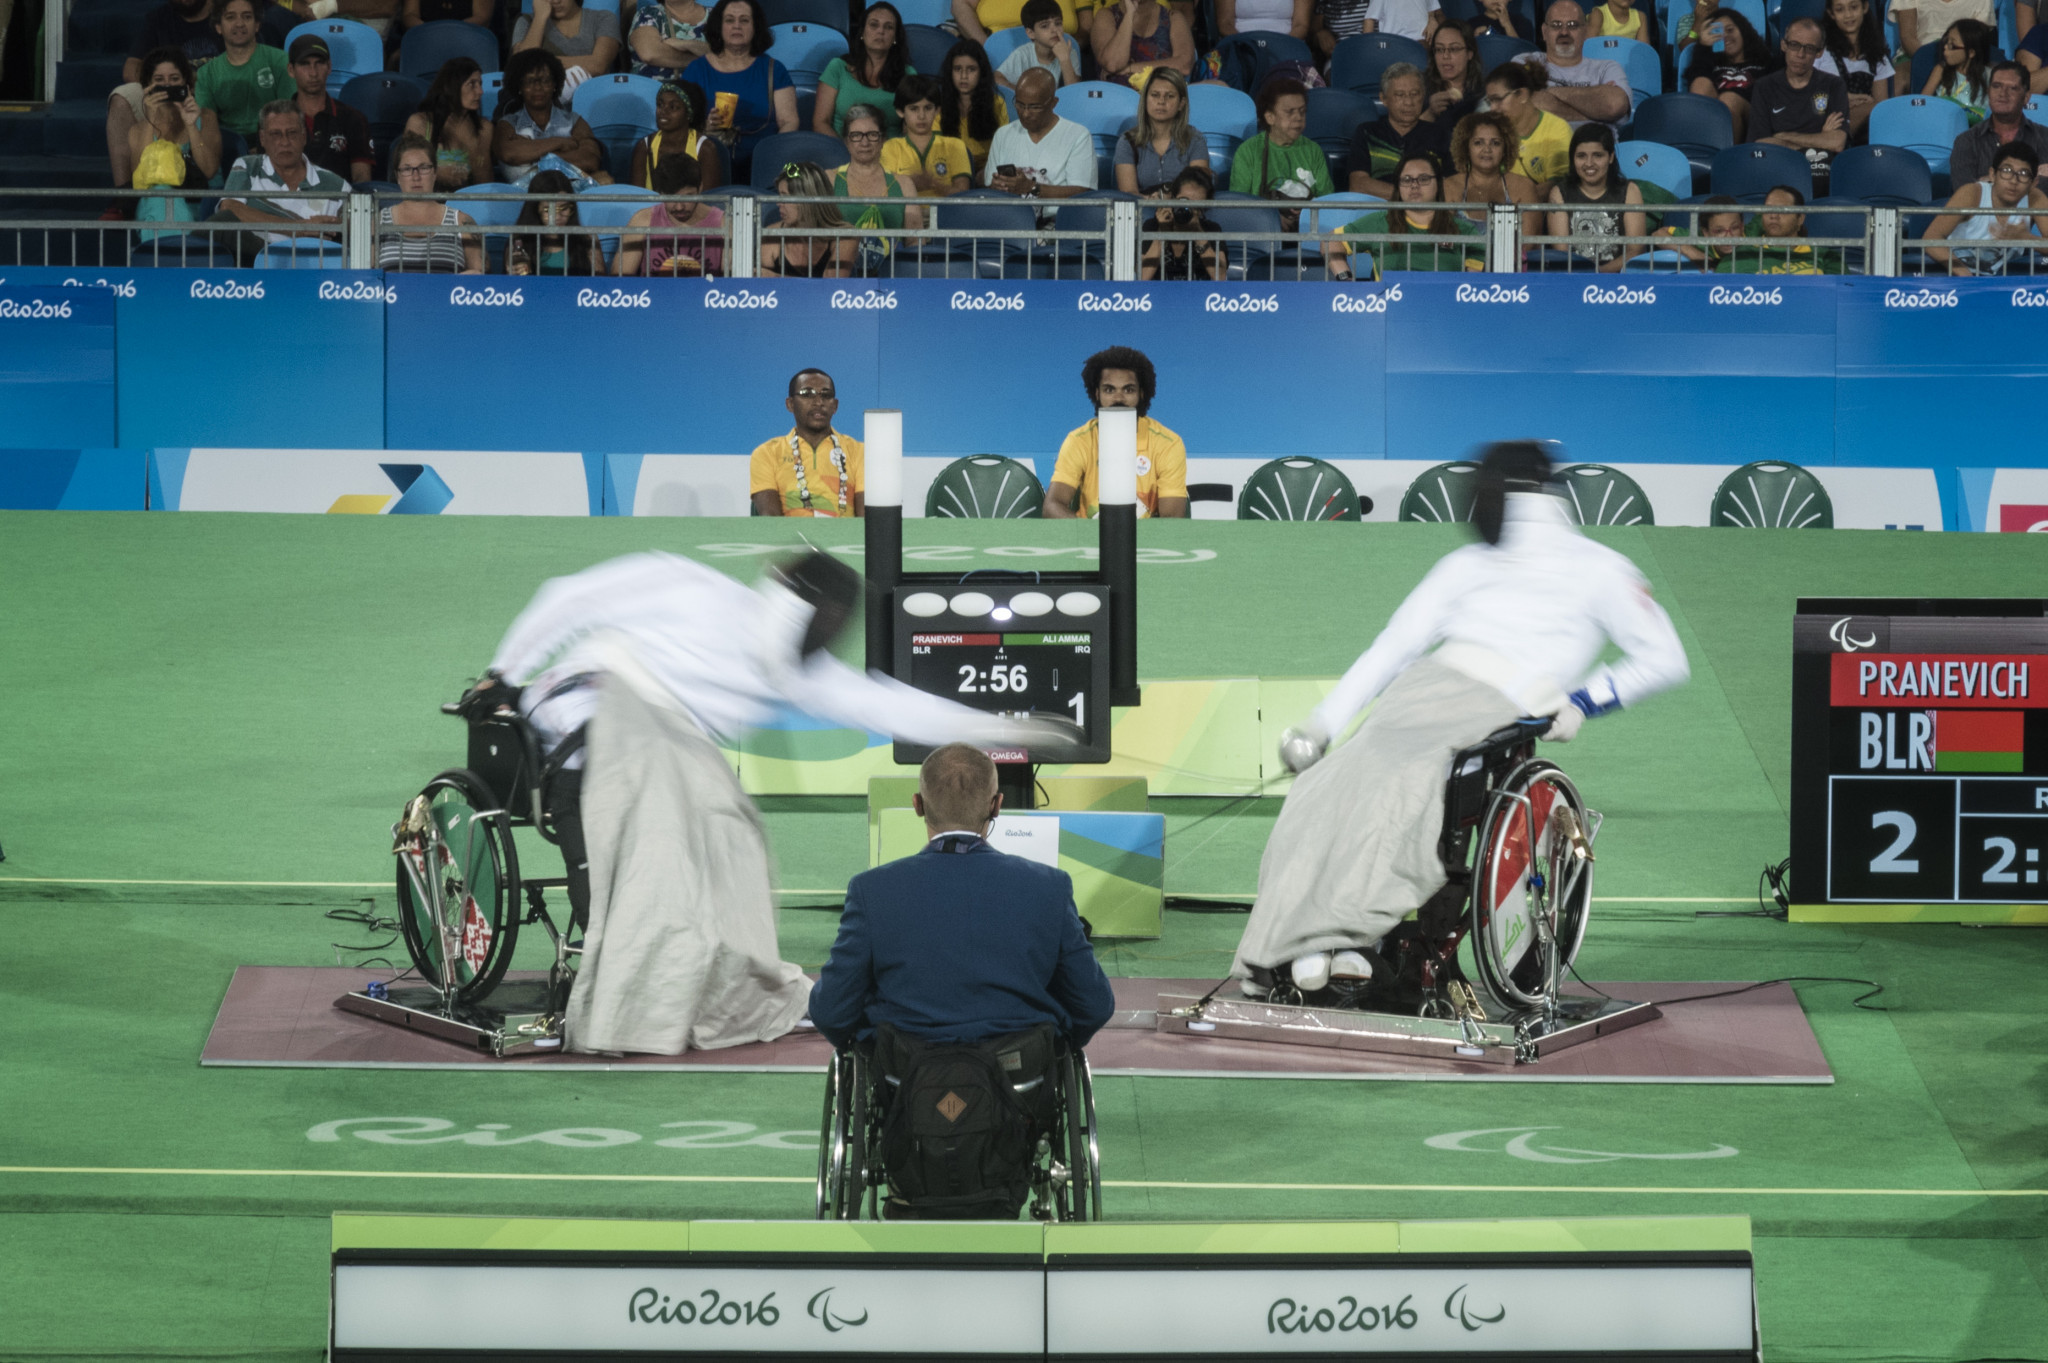 Participants at the 2019 IWAS Wheelchair Fencing World Championships will have the chance to qualify for the Tokyo 2020 Paralympic Games ©Getty Images